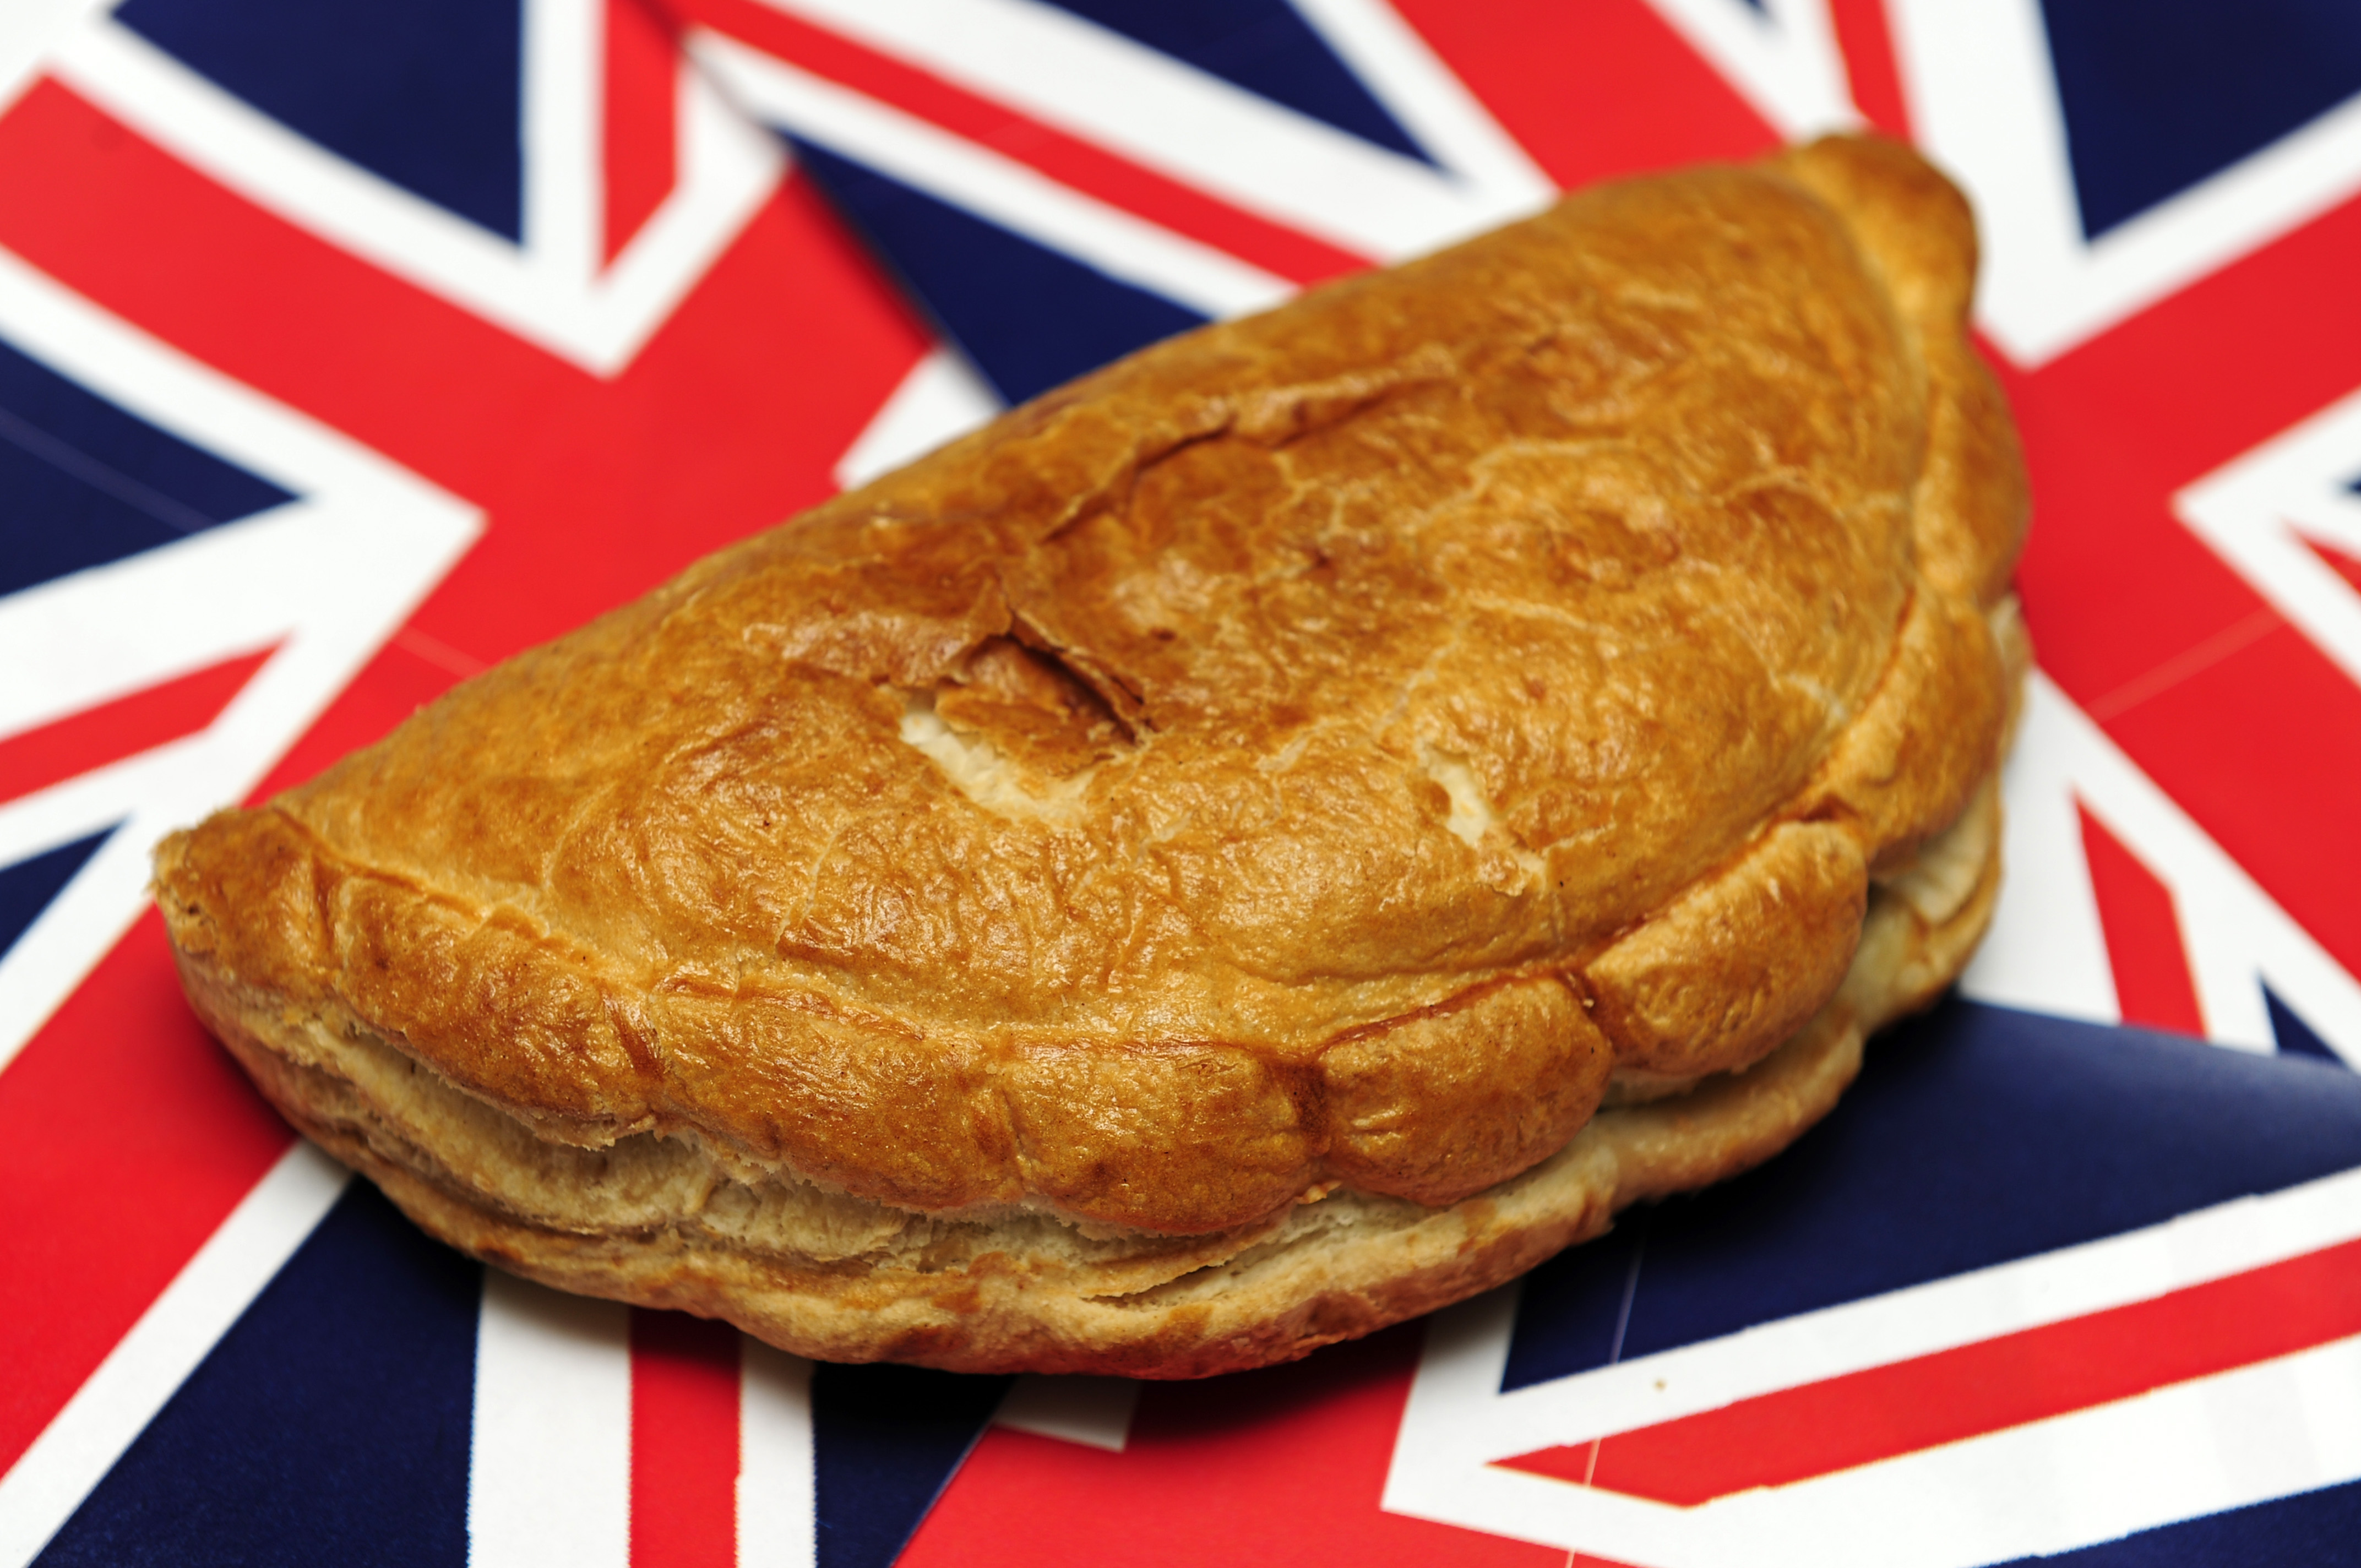 Cornish Pasty Lunch at the British Gala.